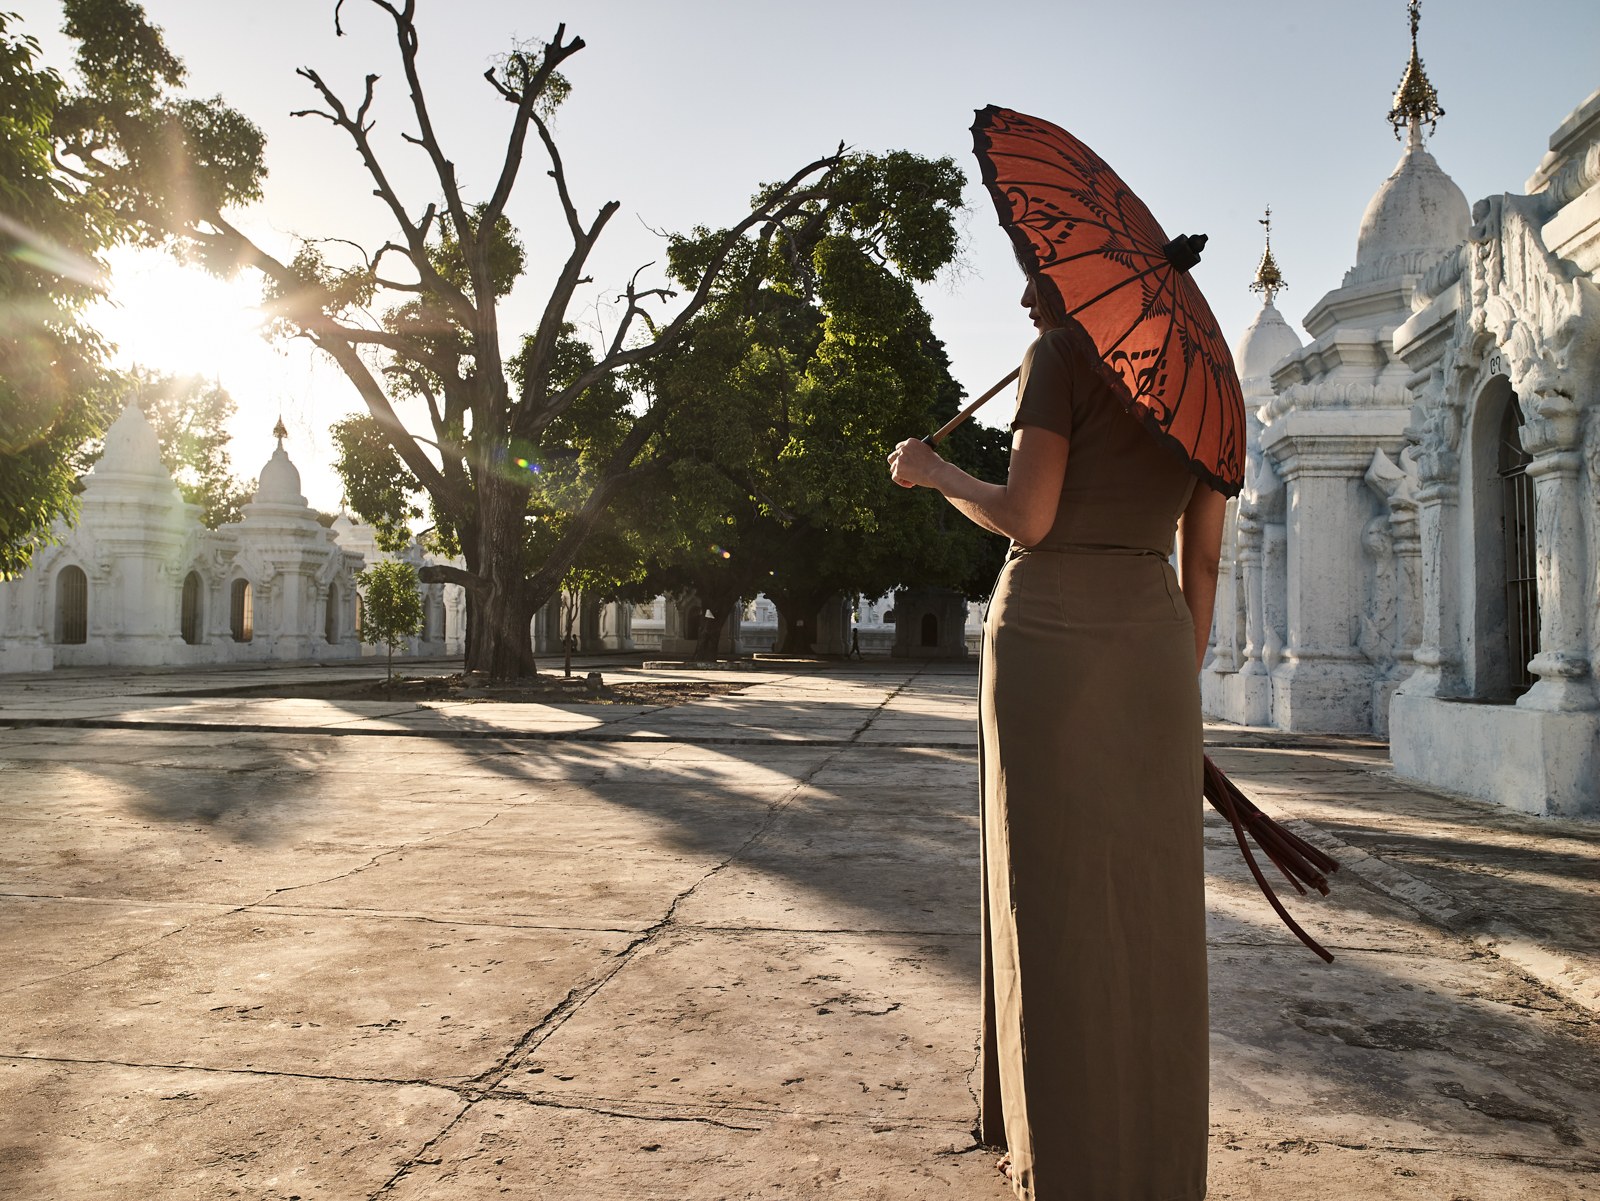 Destination shot in a pagoda in Mandalay Burma, with a model wearing an umbrella